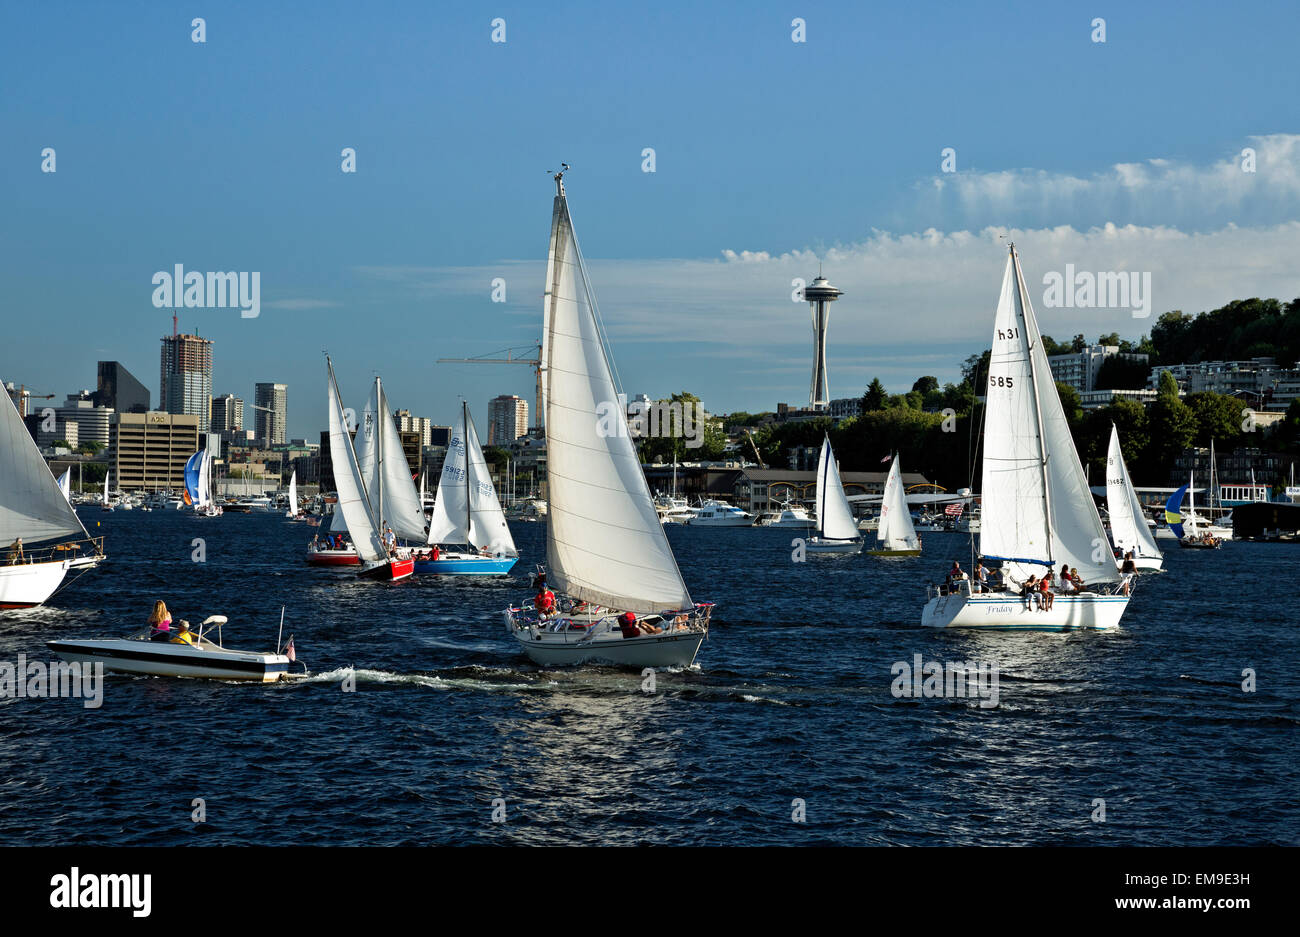 WA10382-00...WASHINGTON - Busy evening on Lake Union as the sailboats head out on the Tuesday Duck Dodge in Seattle. - Stock Image